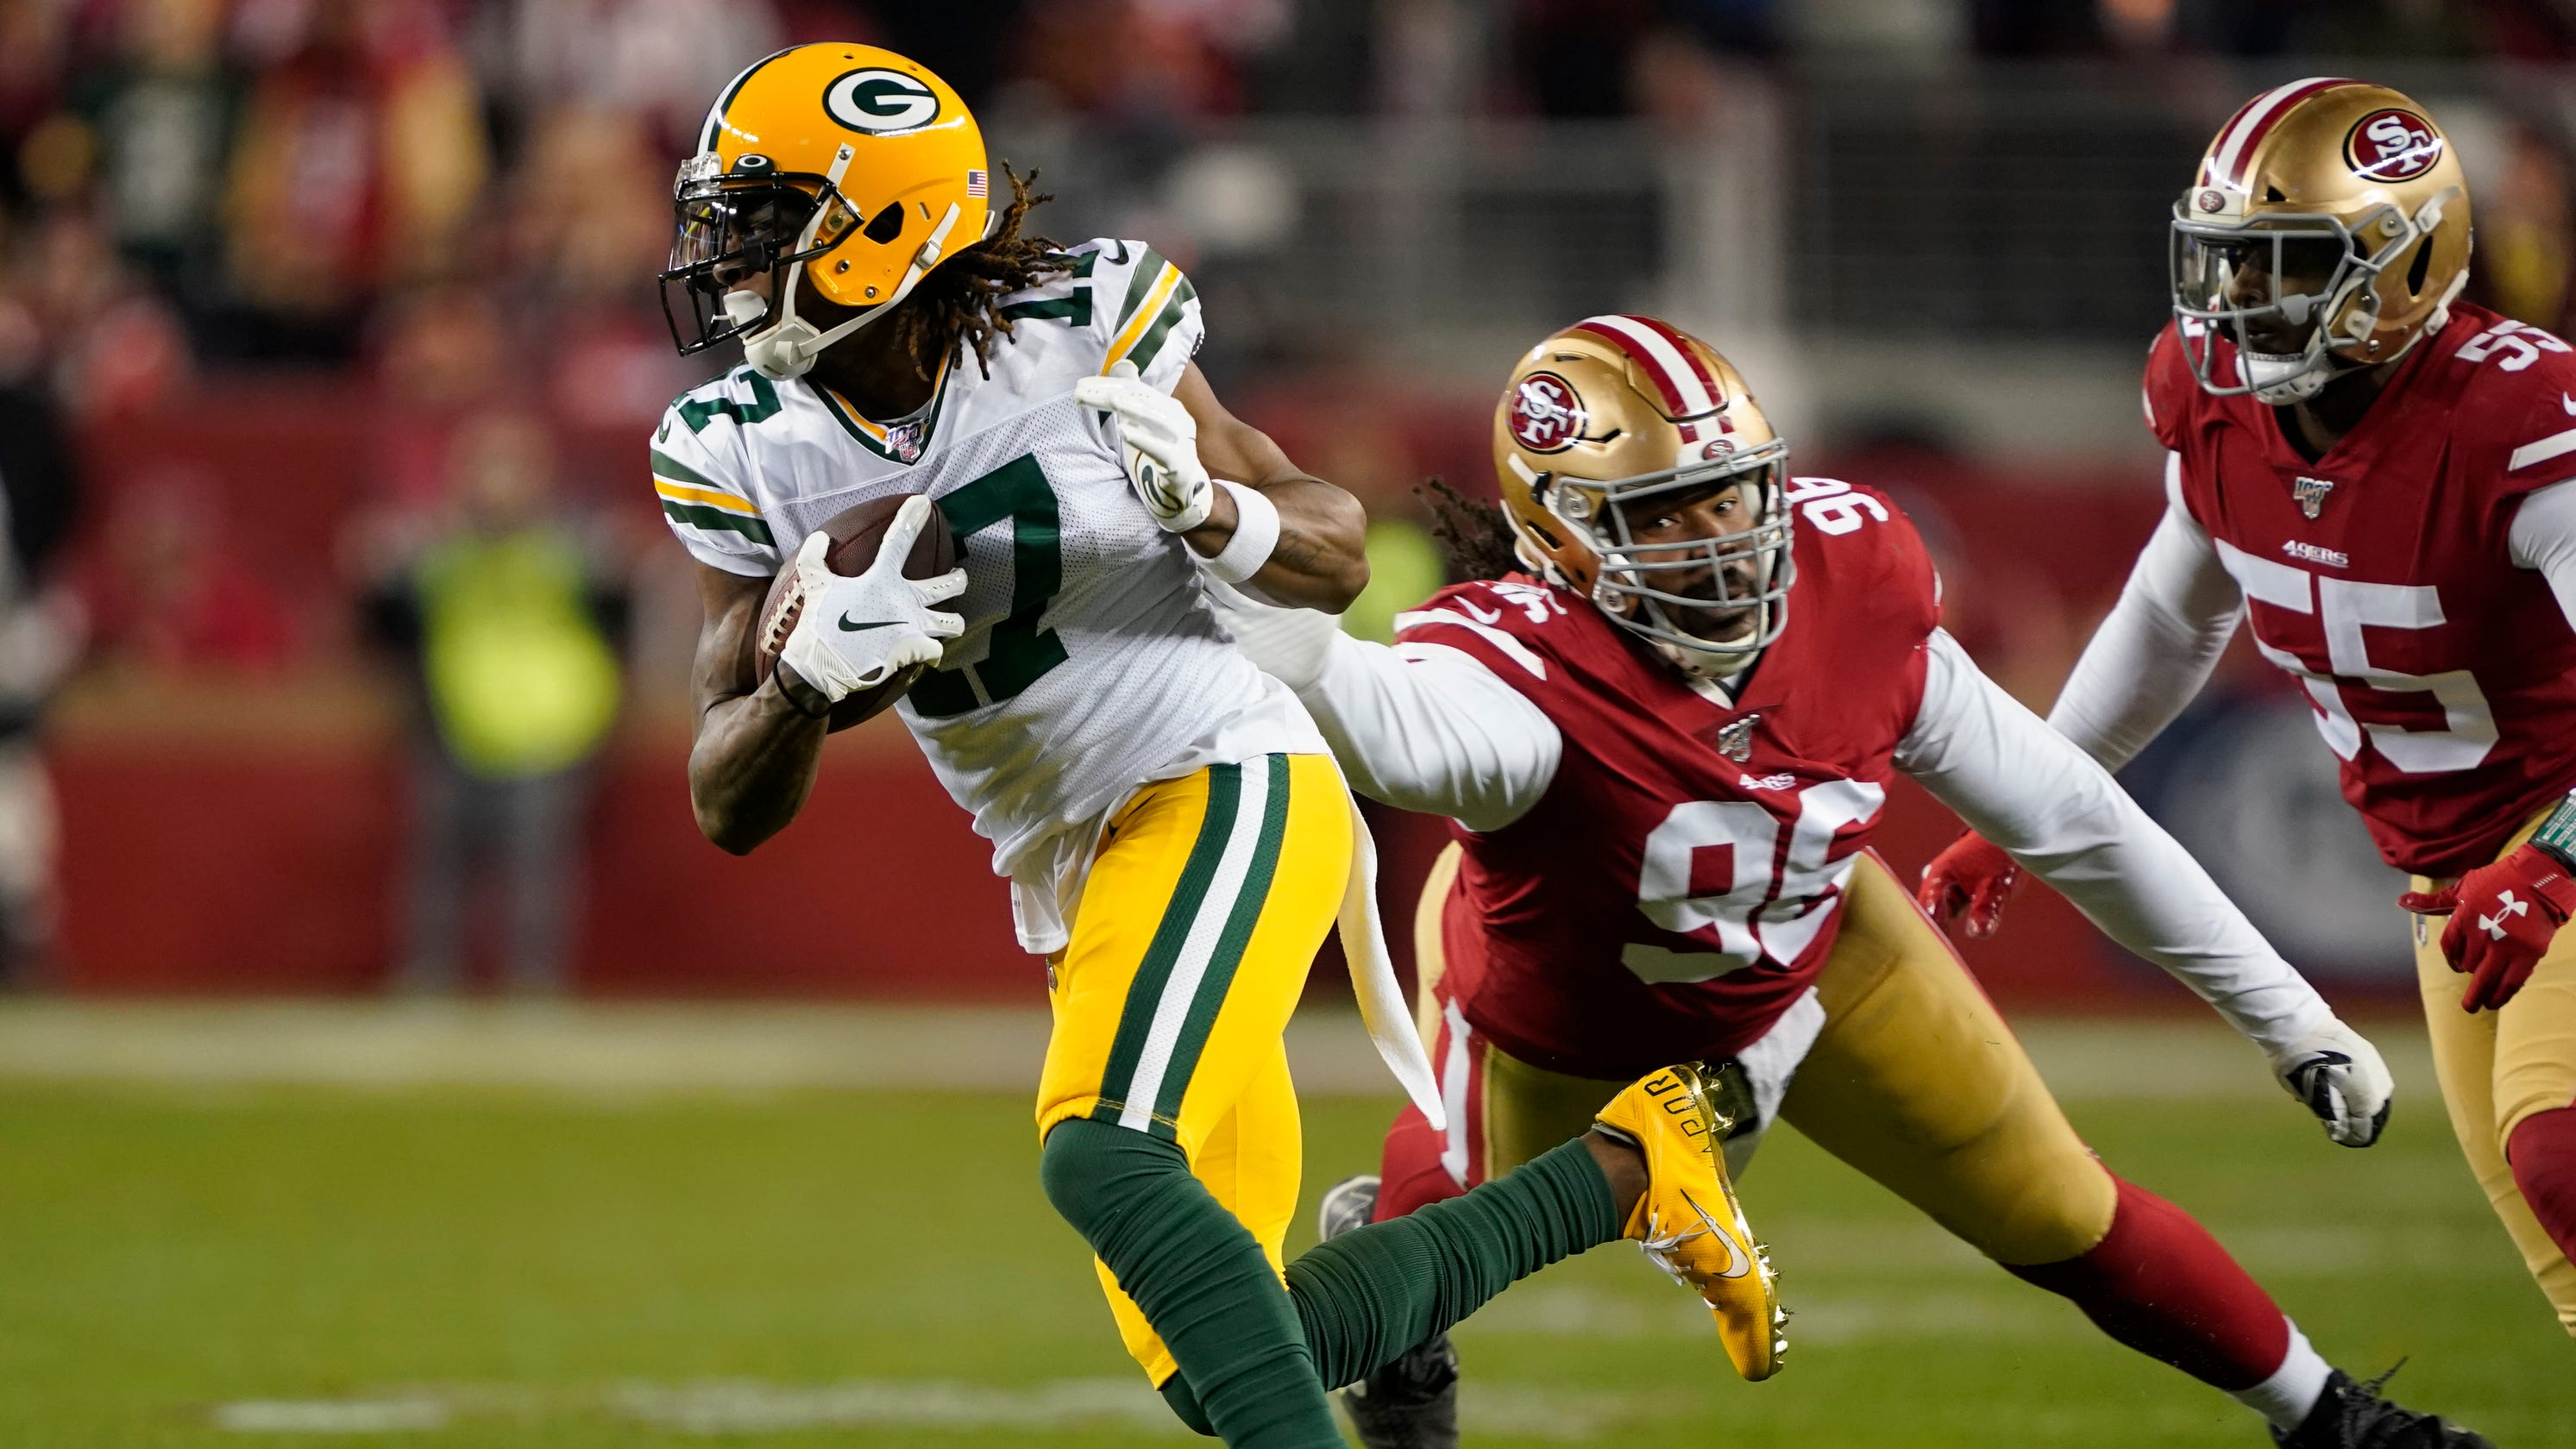 Unlike upstart Tampa Bay Bucs, Green Bay Packers no strangers to the NFC championship game